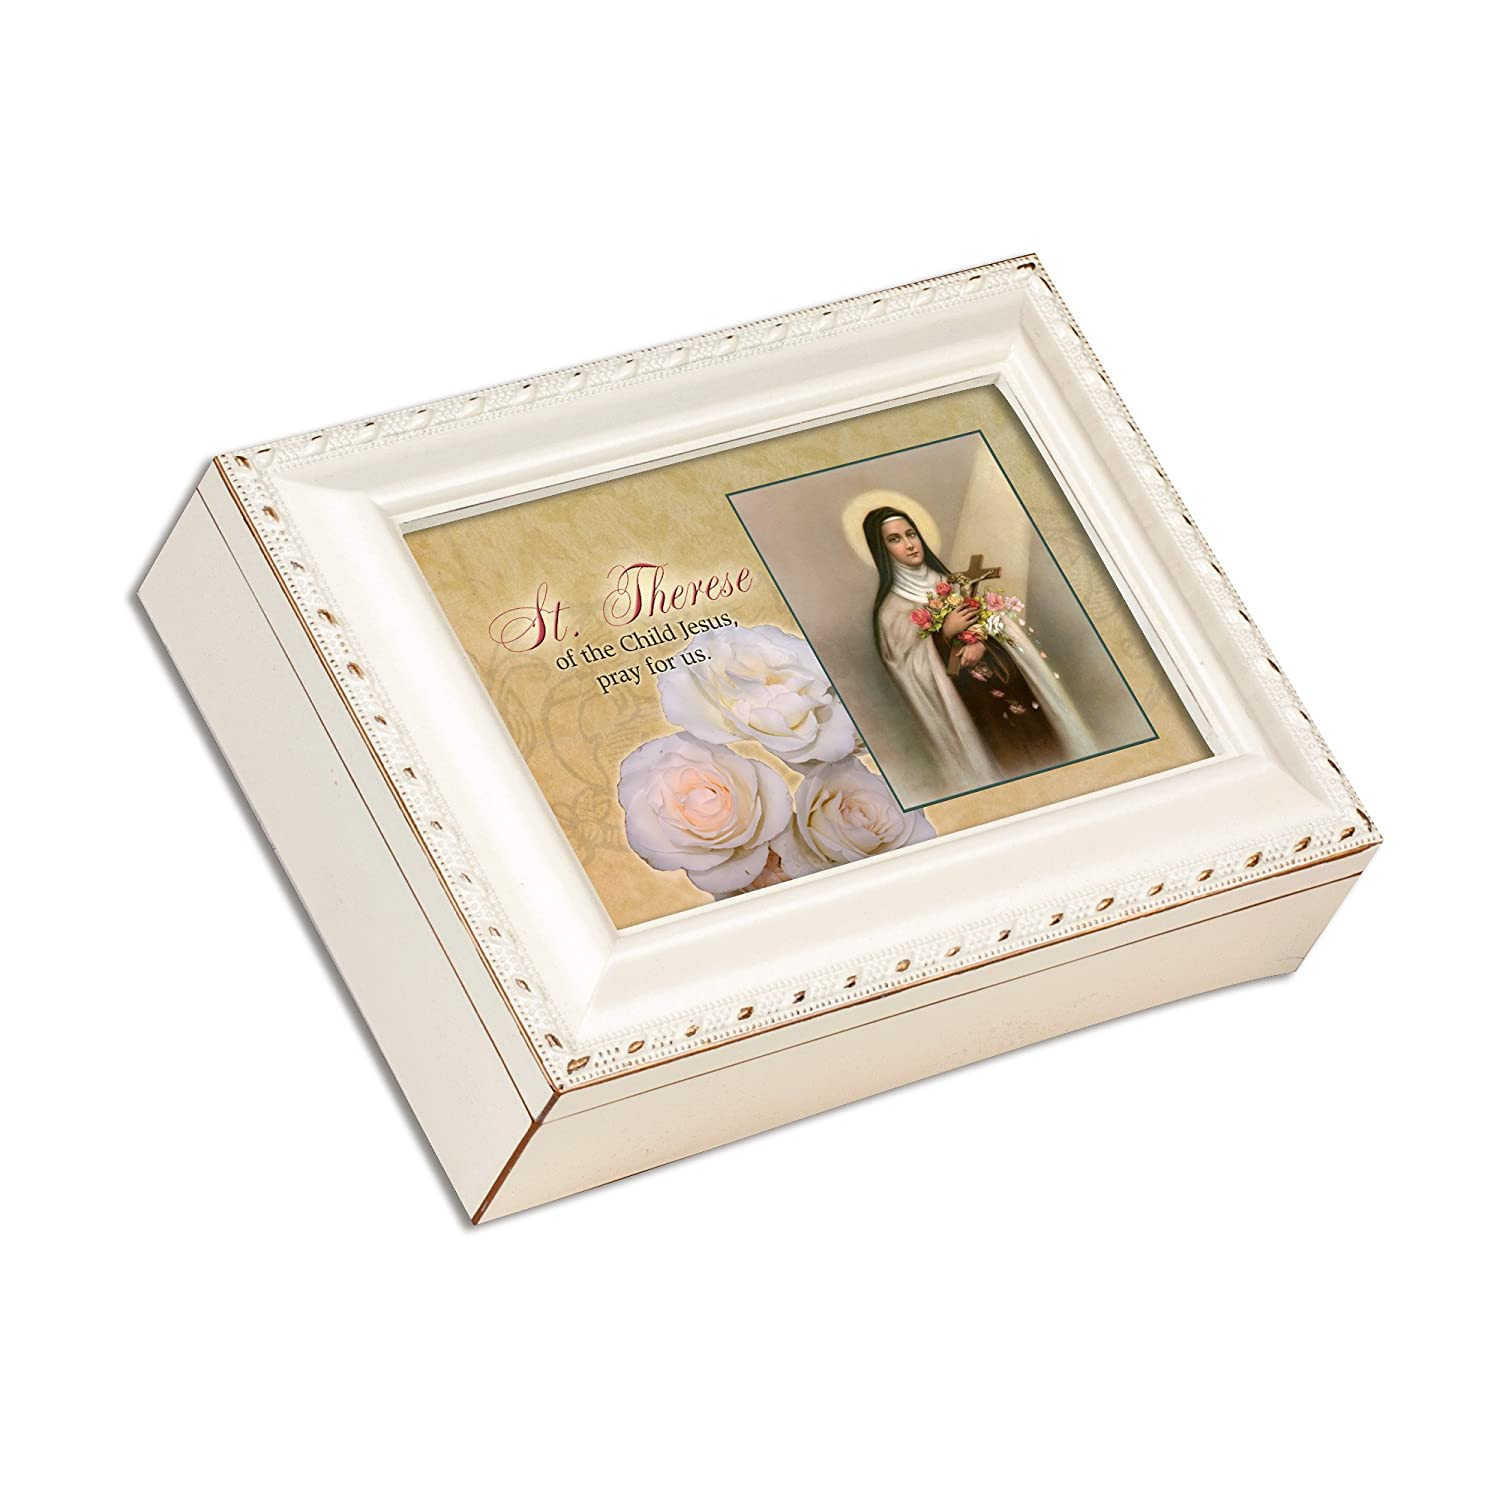 Cottage Garden Madonna of The Streets Ivory Gold Trim Jewelry Music Box Plays Ave Maria